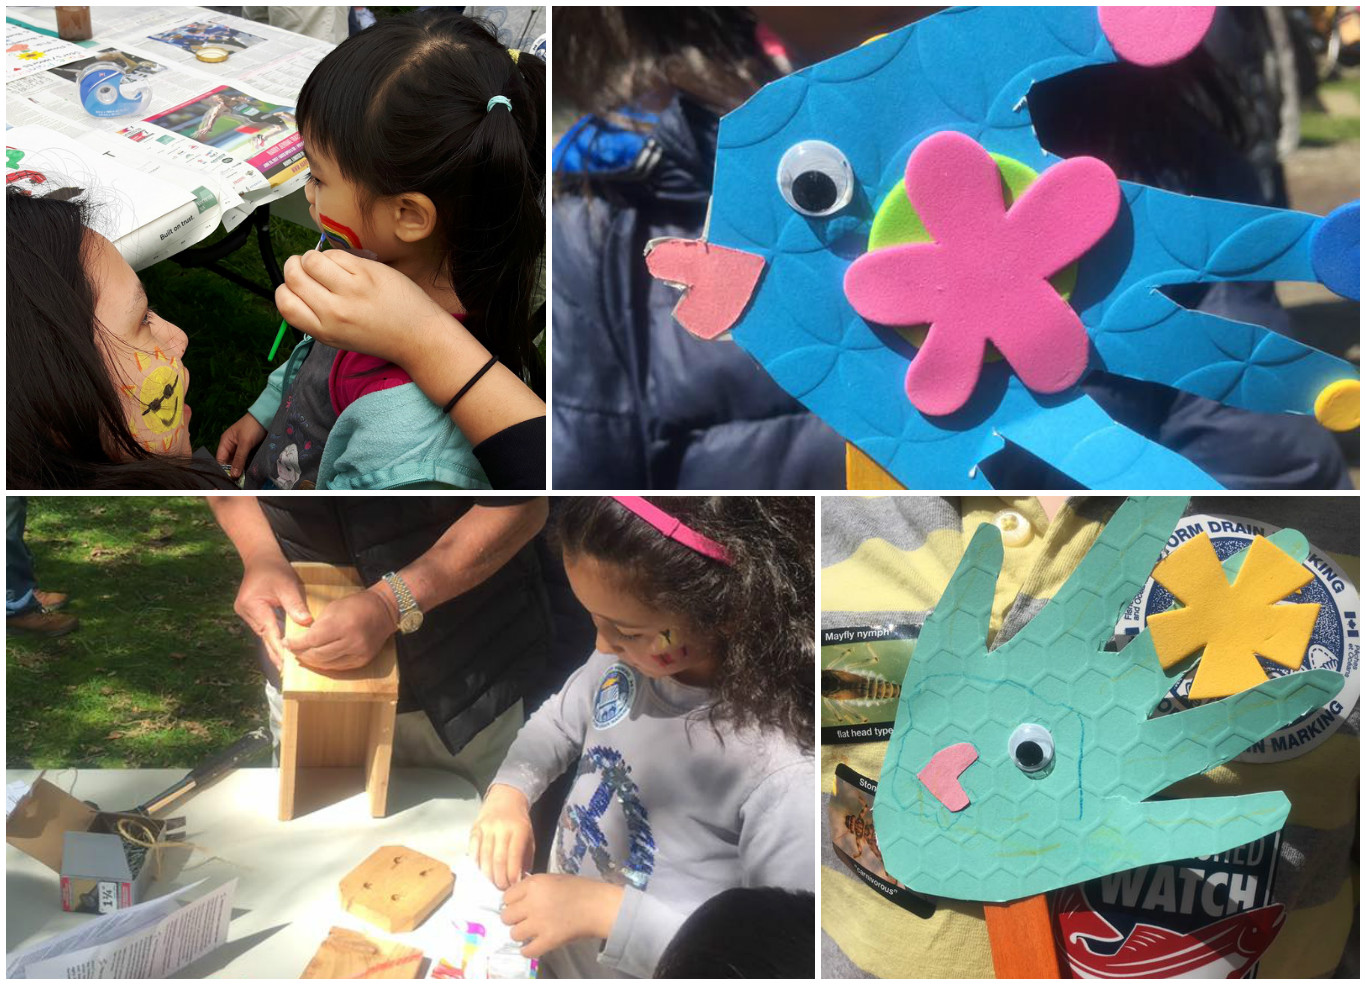 Face-painting, building bird boxes, and fish crafts...